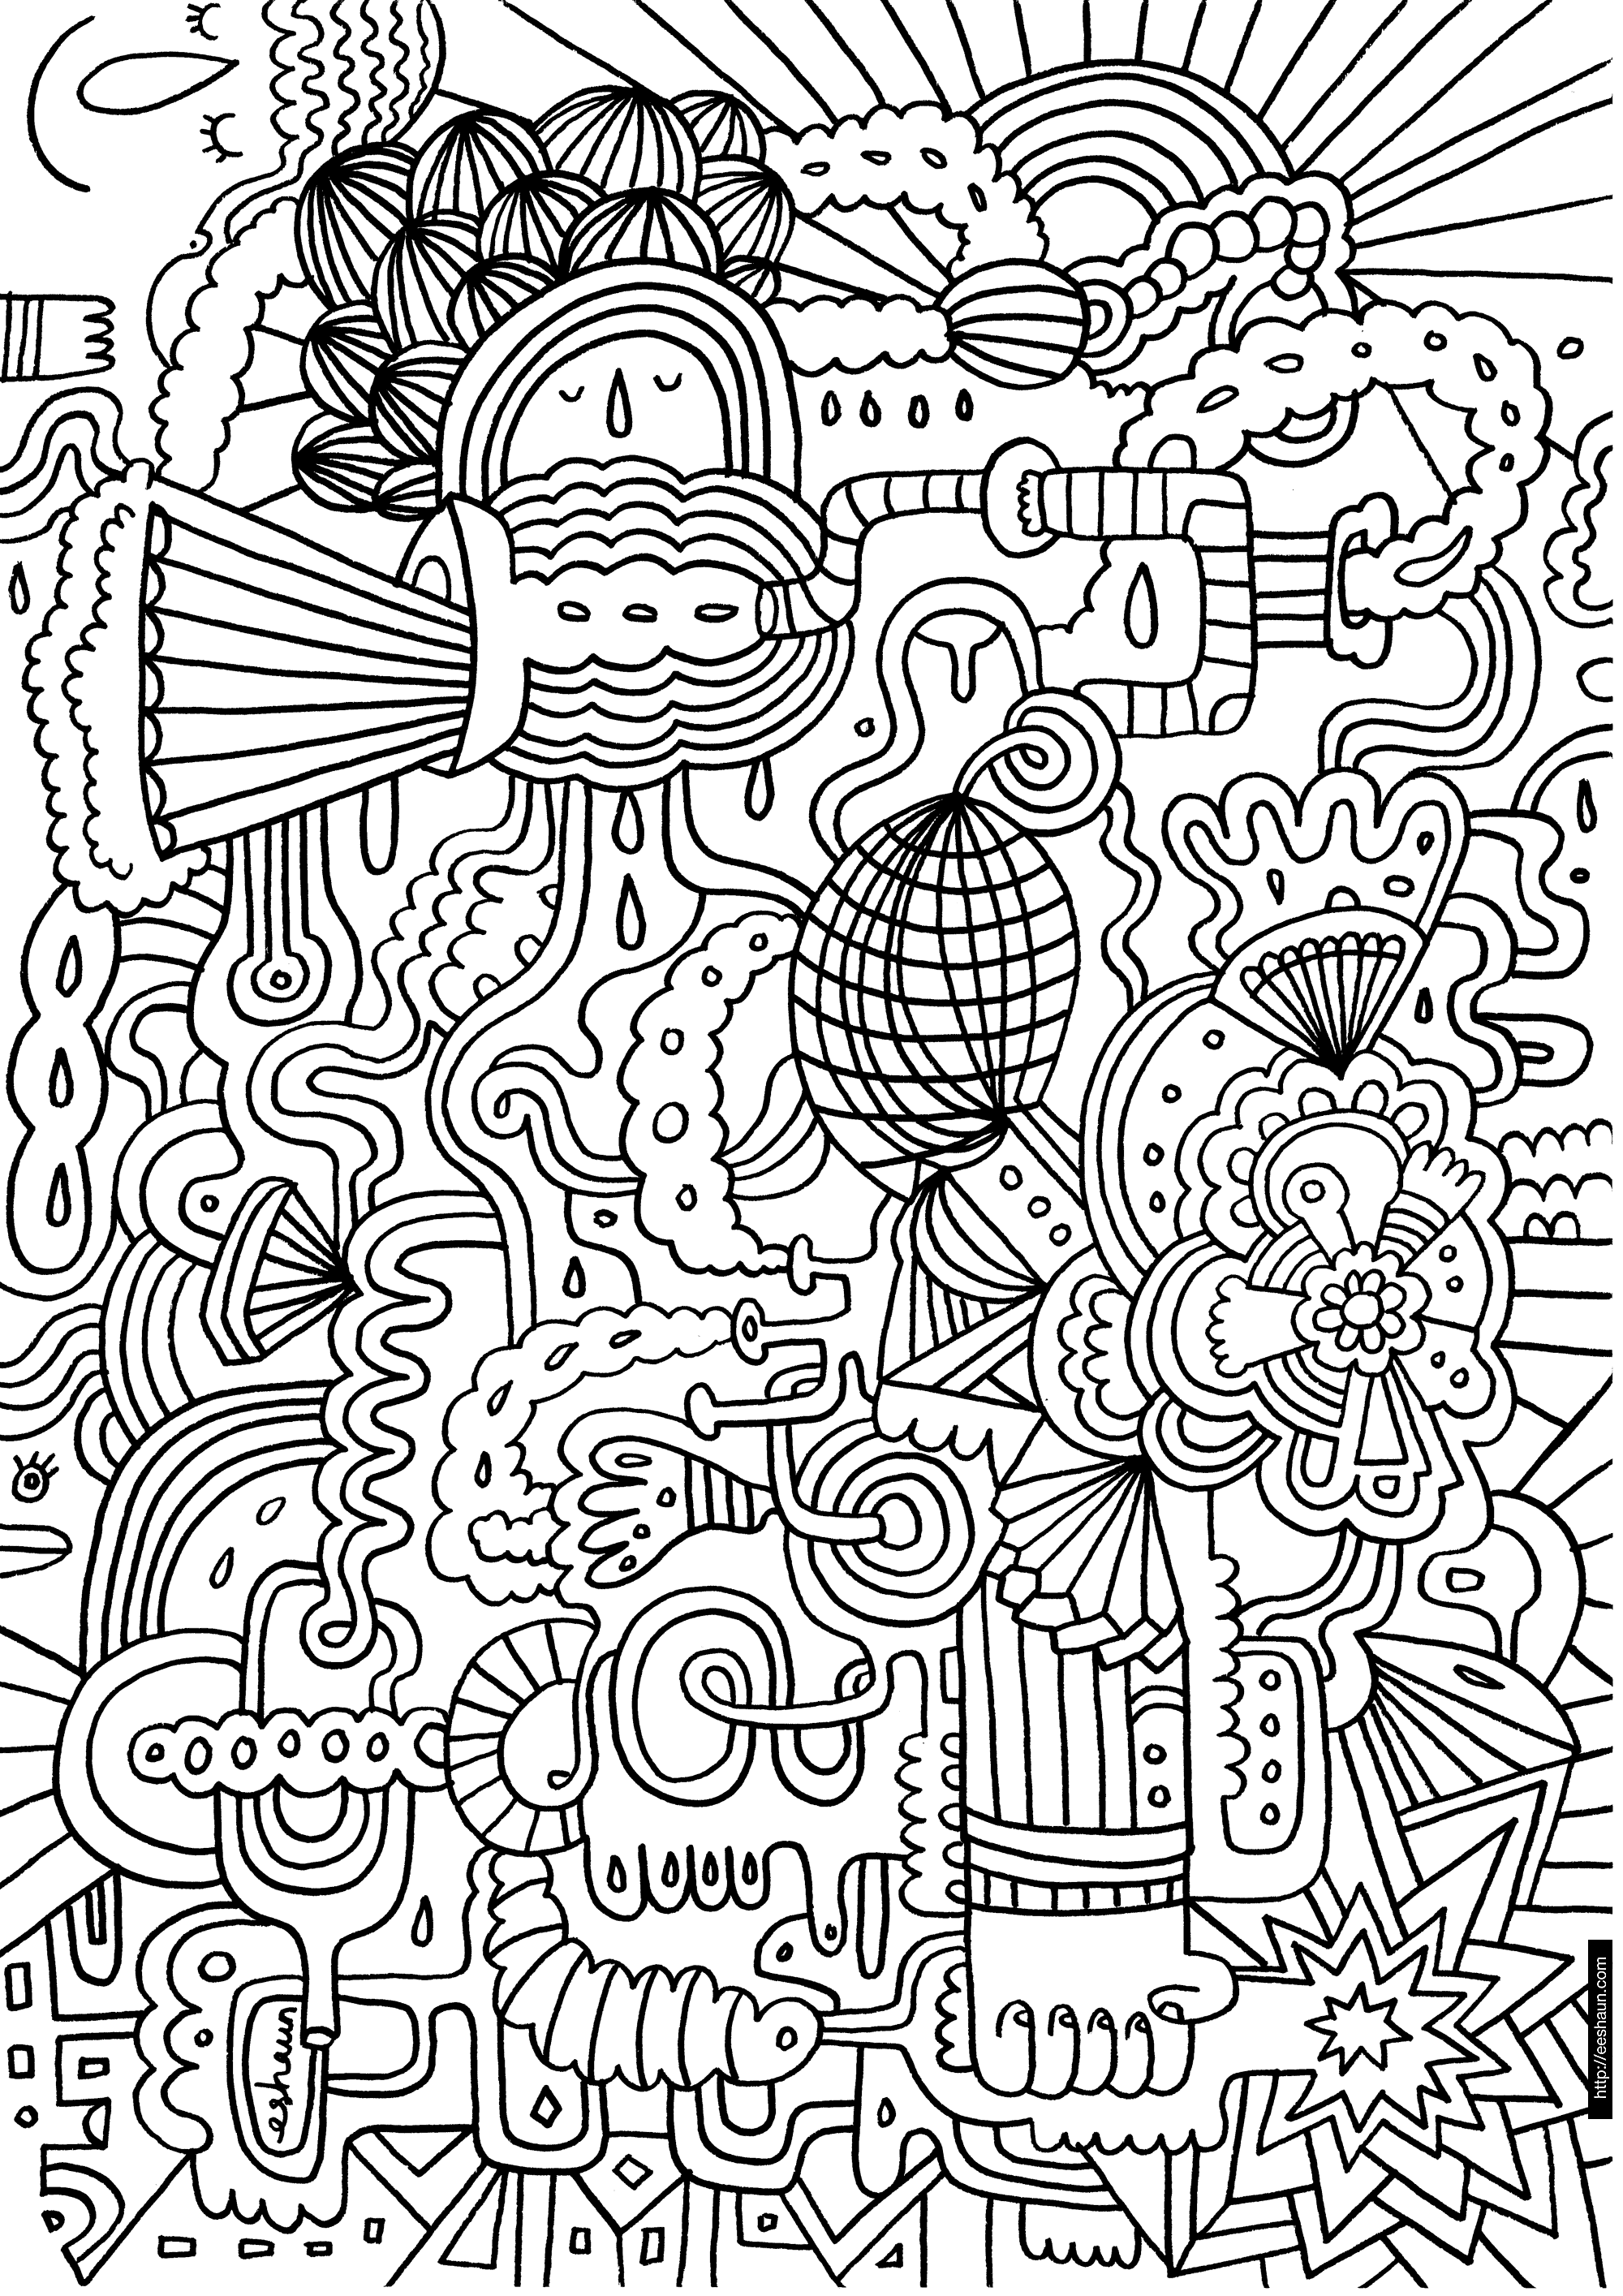 difficult coloring pages 15,printable,coloring pages